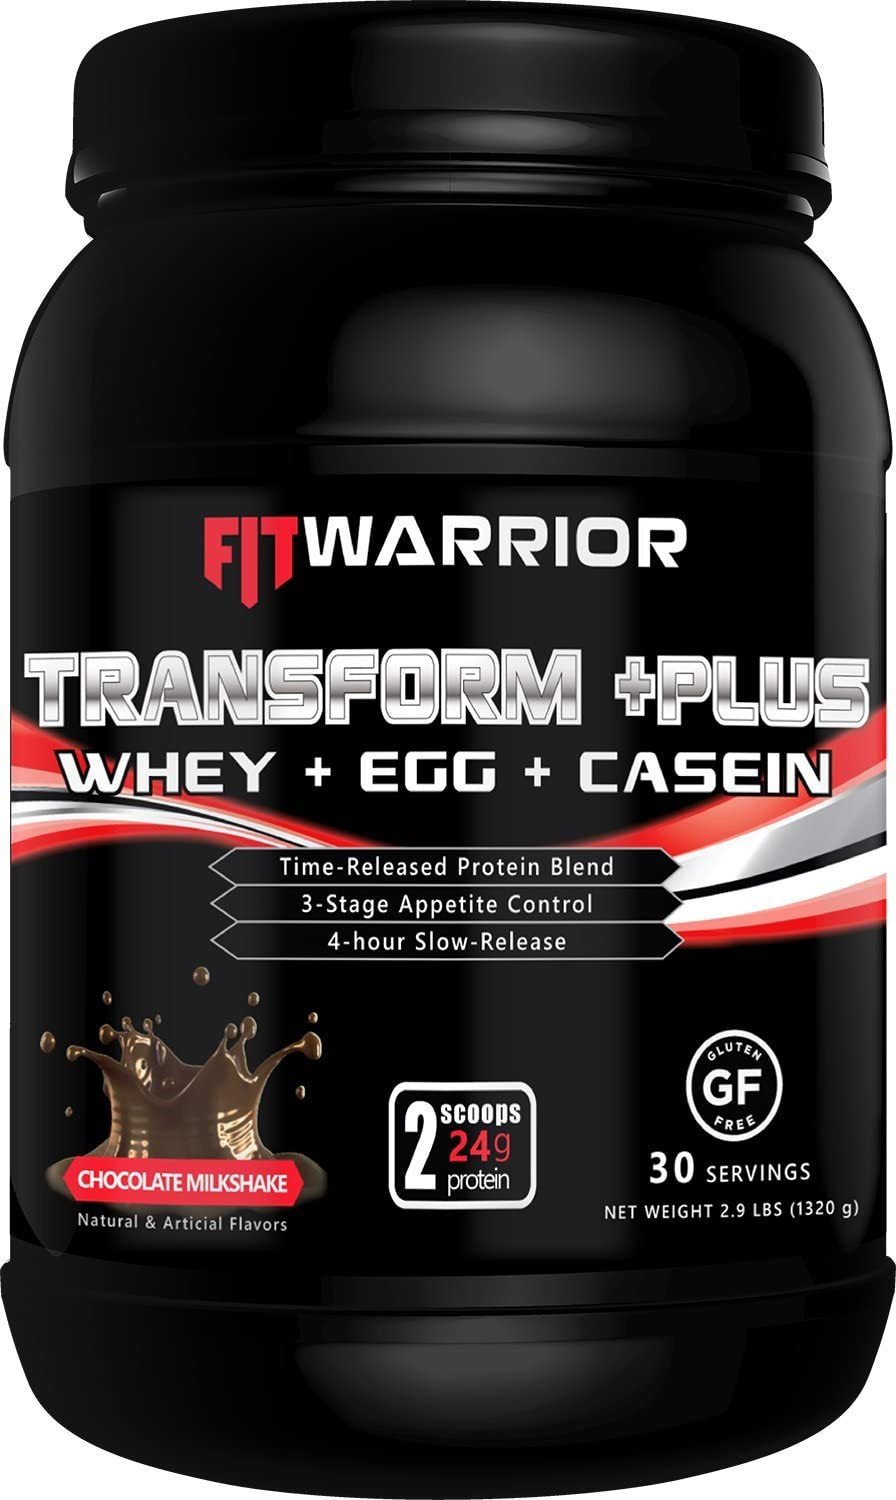 TRANSFORM PLUS Whey, Egg White, Milk Casein Protein Blend Chocolate Milkshake , 24g Protein, 2.9 Pound Powder, 30 Serving – Meal Replacement, Anti-Hunger 4-Hr Time-Release Appetite-Control Formula